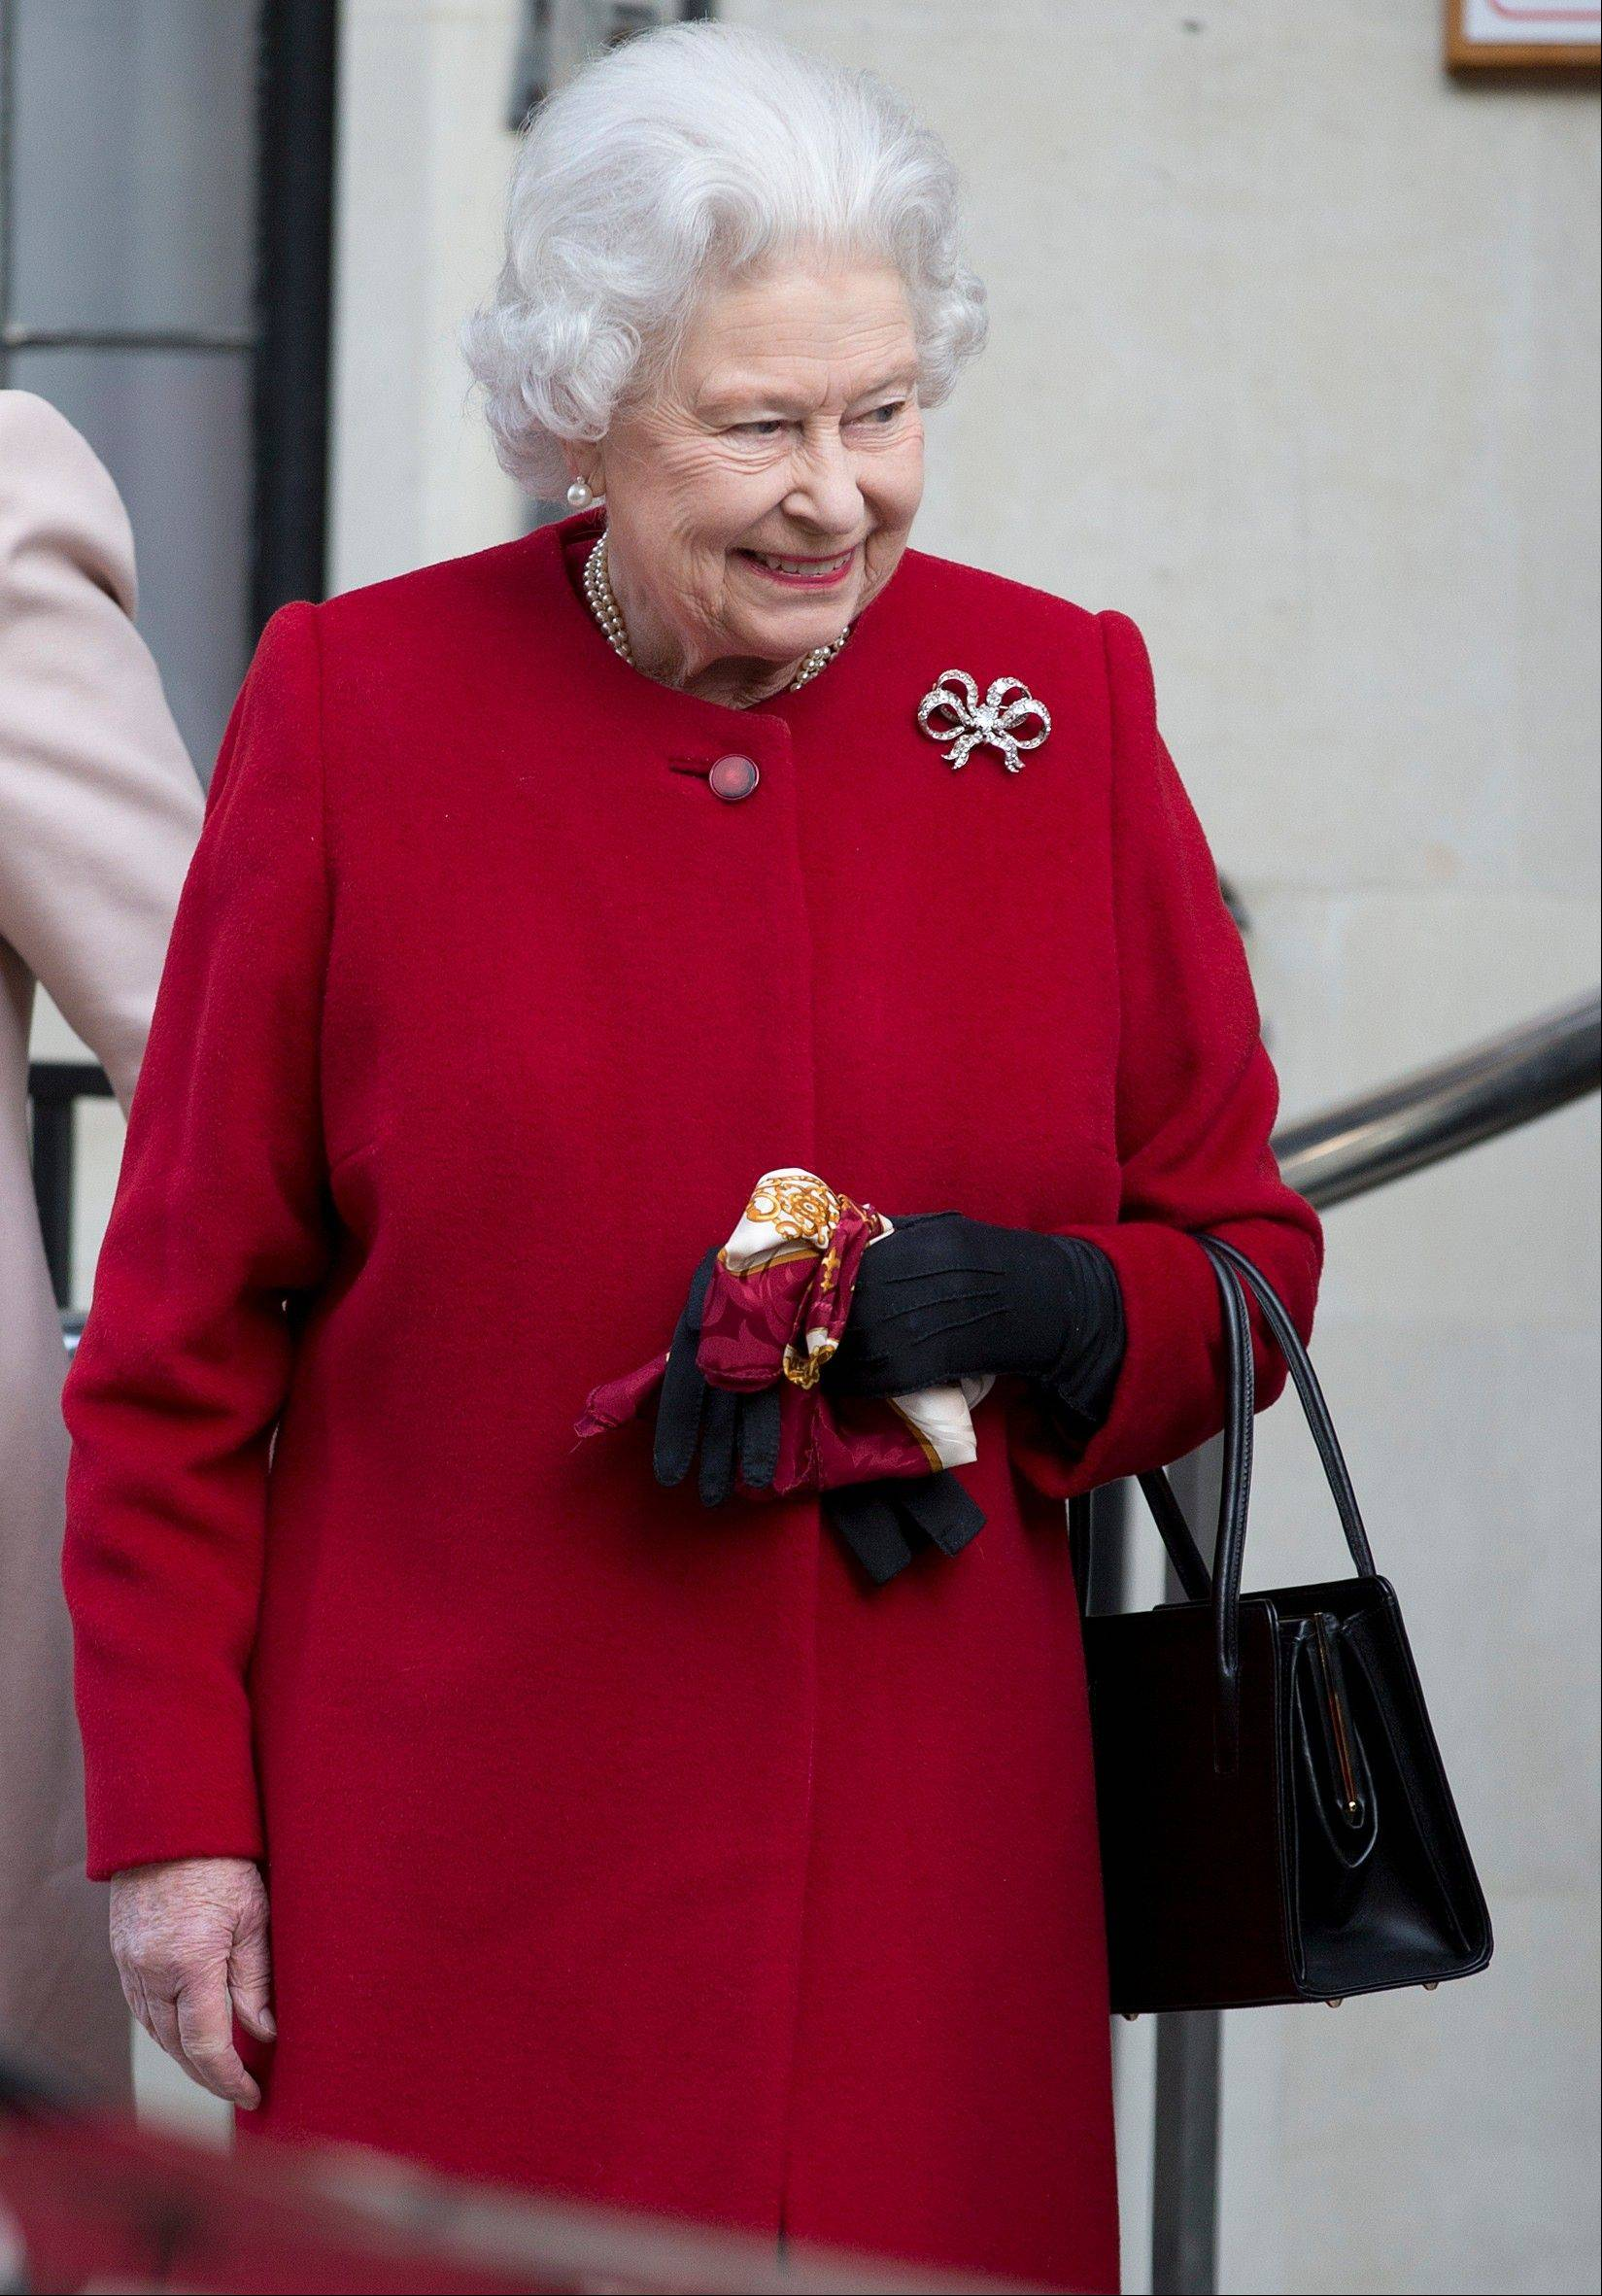 Britain's Queen Elizabeth II leaves the King Edward VII hospital following a one-day stay caused by a stomach ailment, London Monday, March 4, 2013. The 86-year-old queen fell ill Friday and was being treated at Windsor Castle until Sunday, when she was moved to a central London hospital as a precaution. (AP Photo/Alastair Grant)